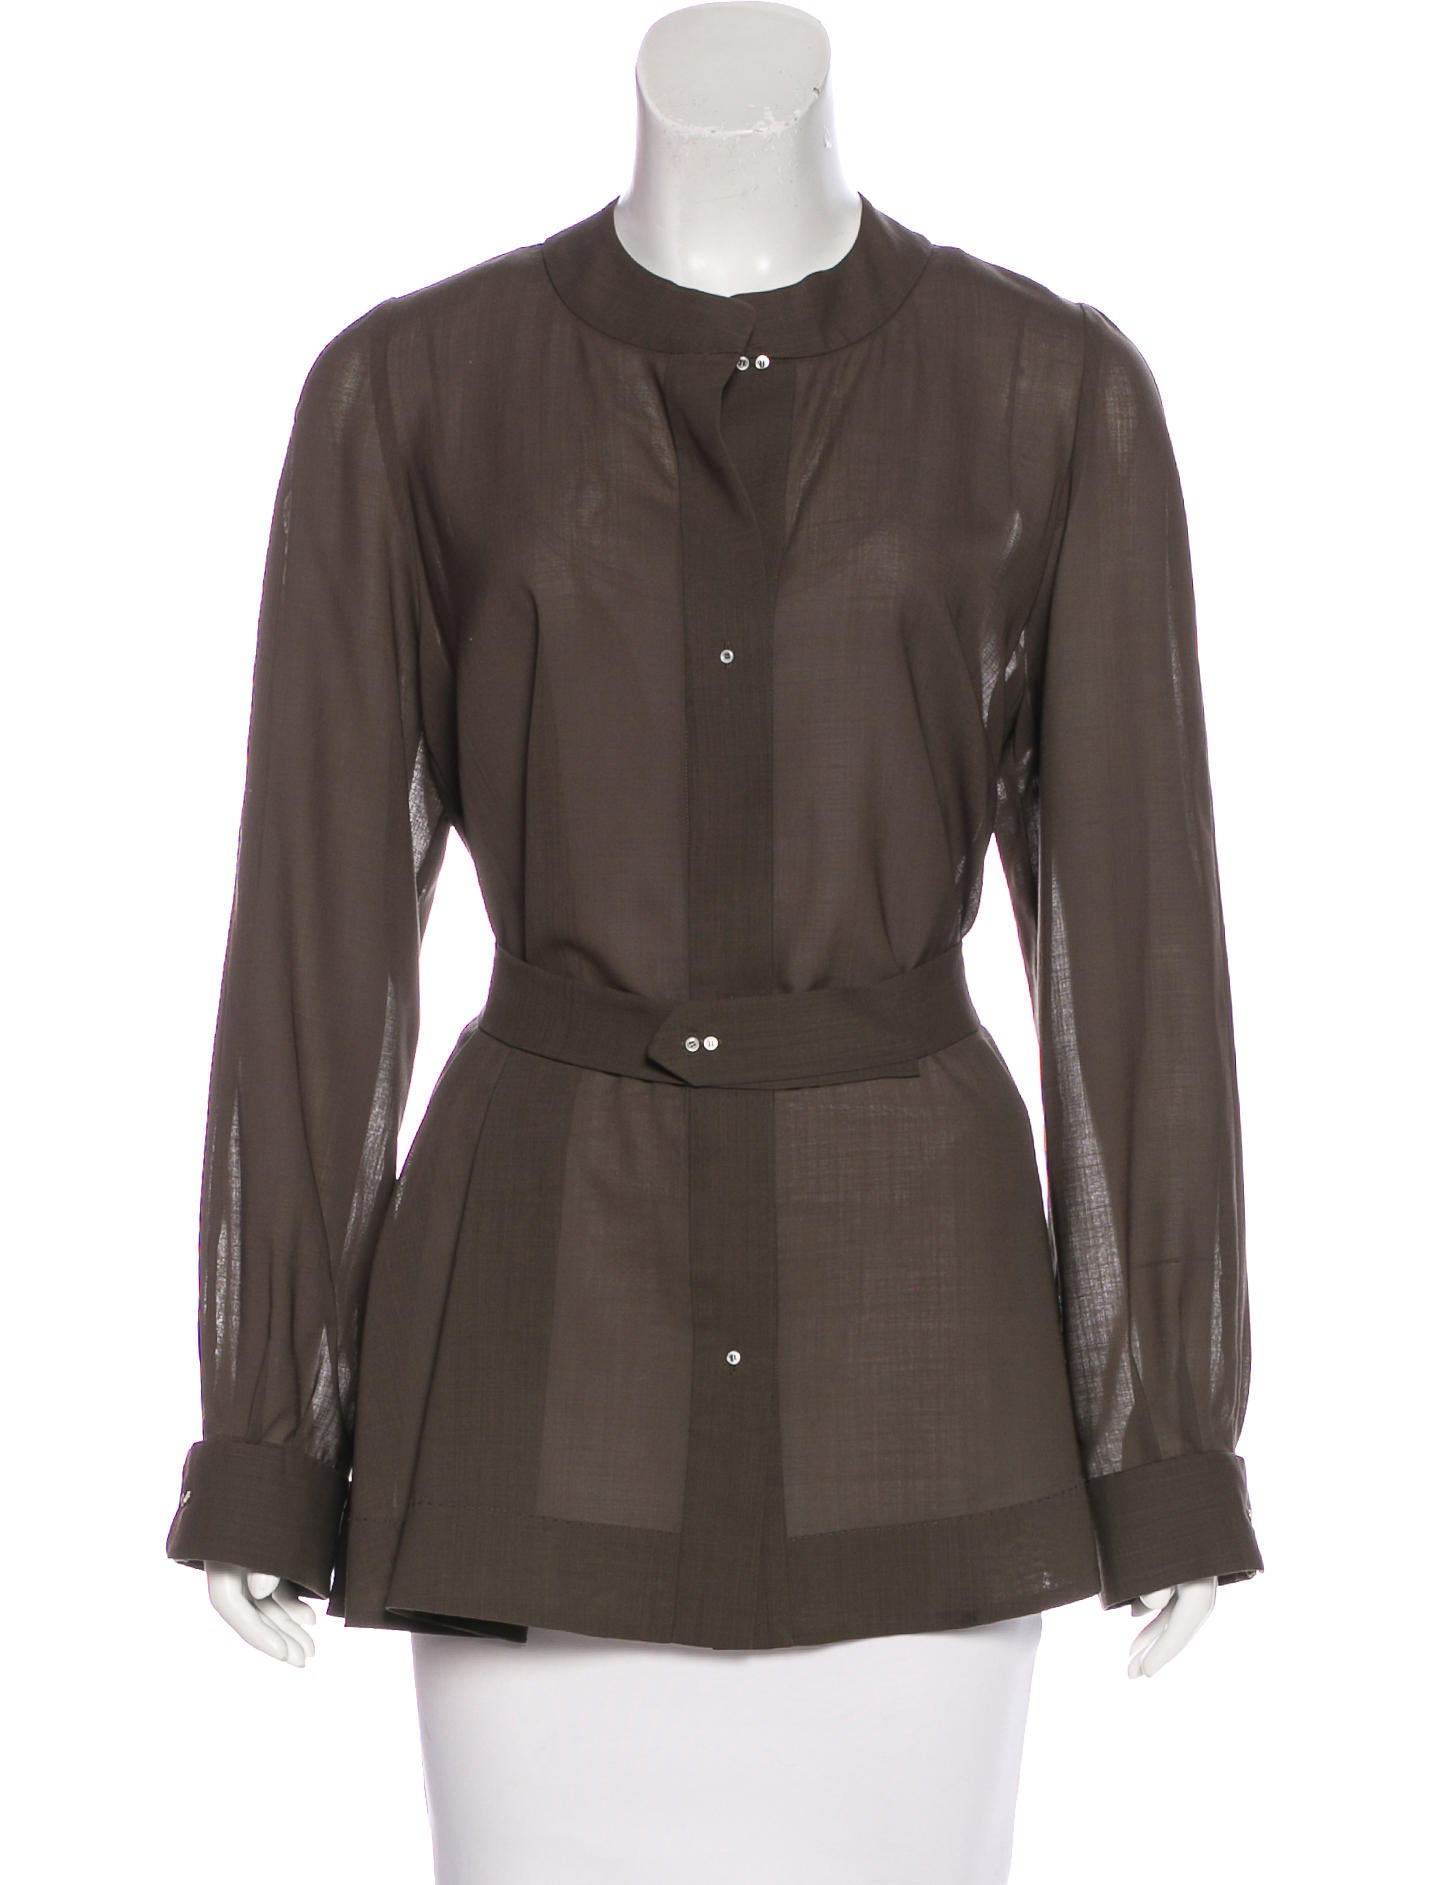 Chlo wool long sleeve top clothing chl64655 the for Best wool shirt jackets